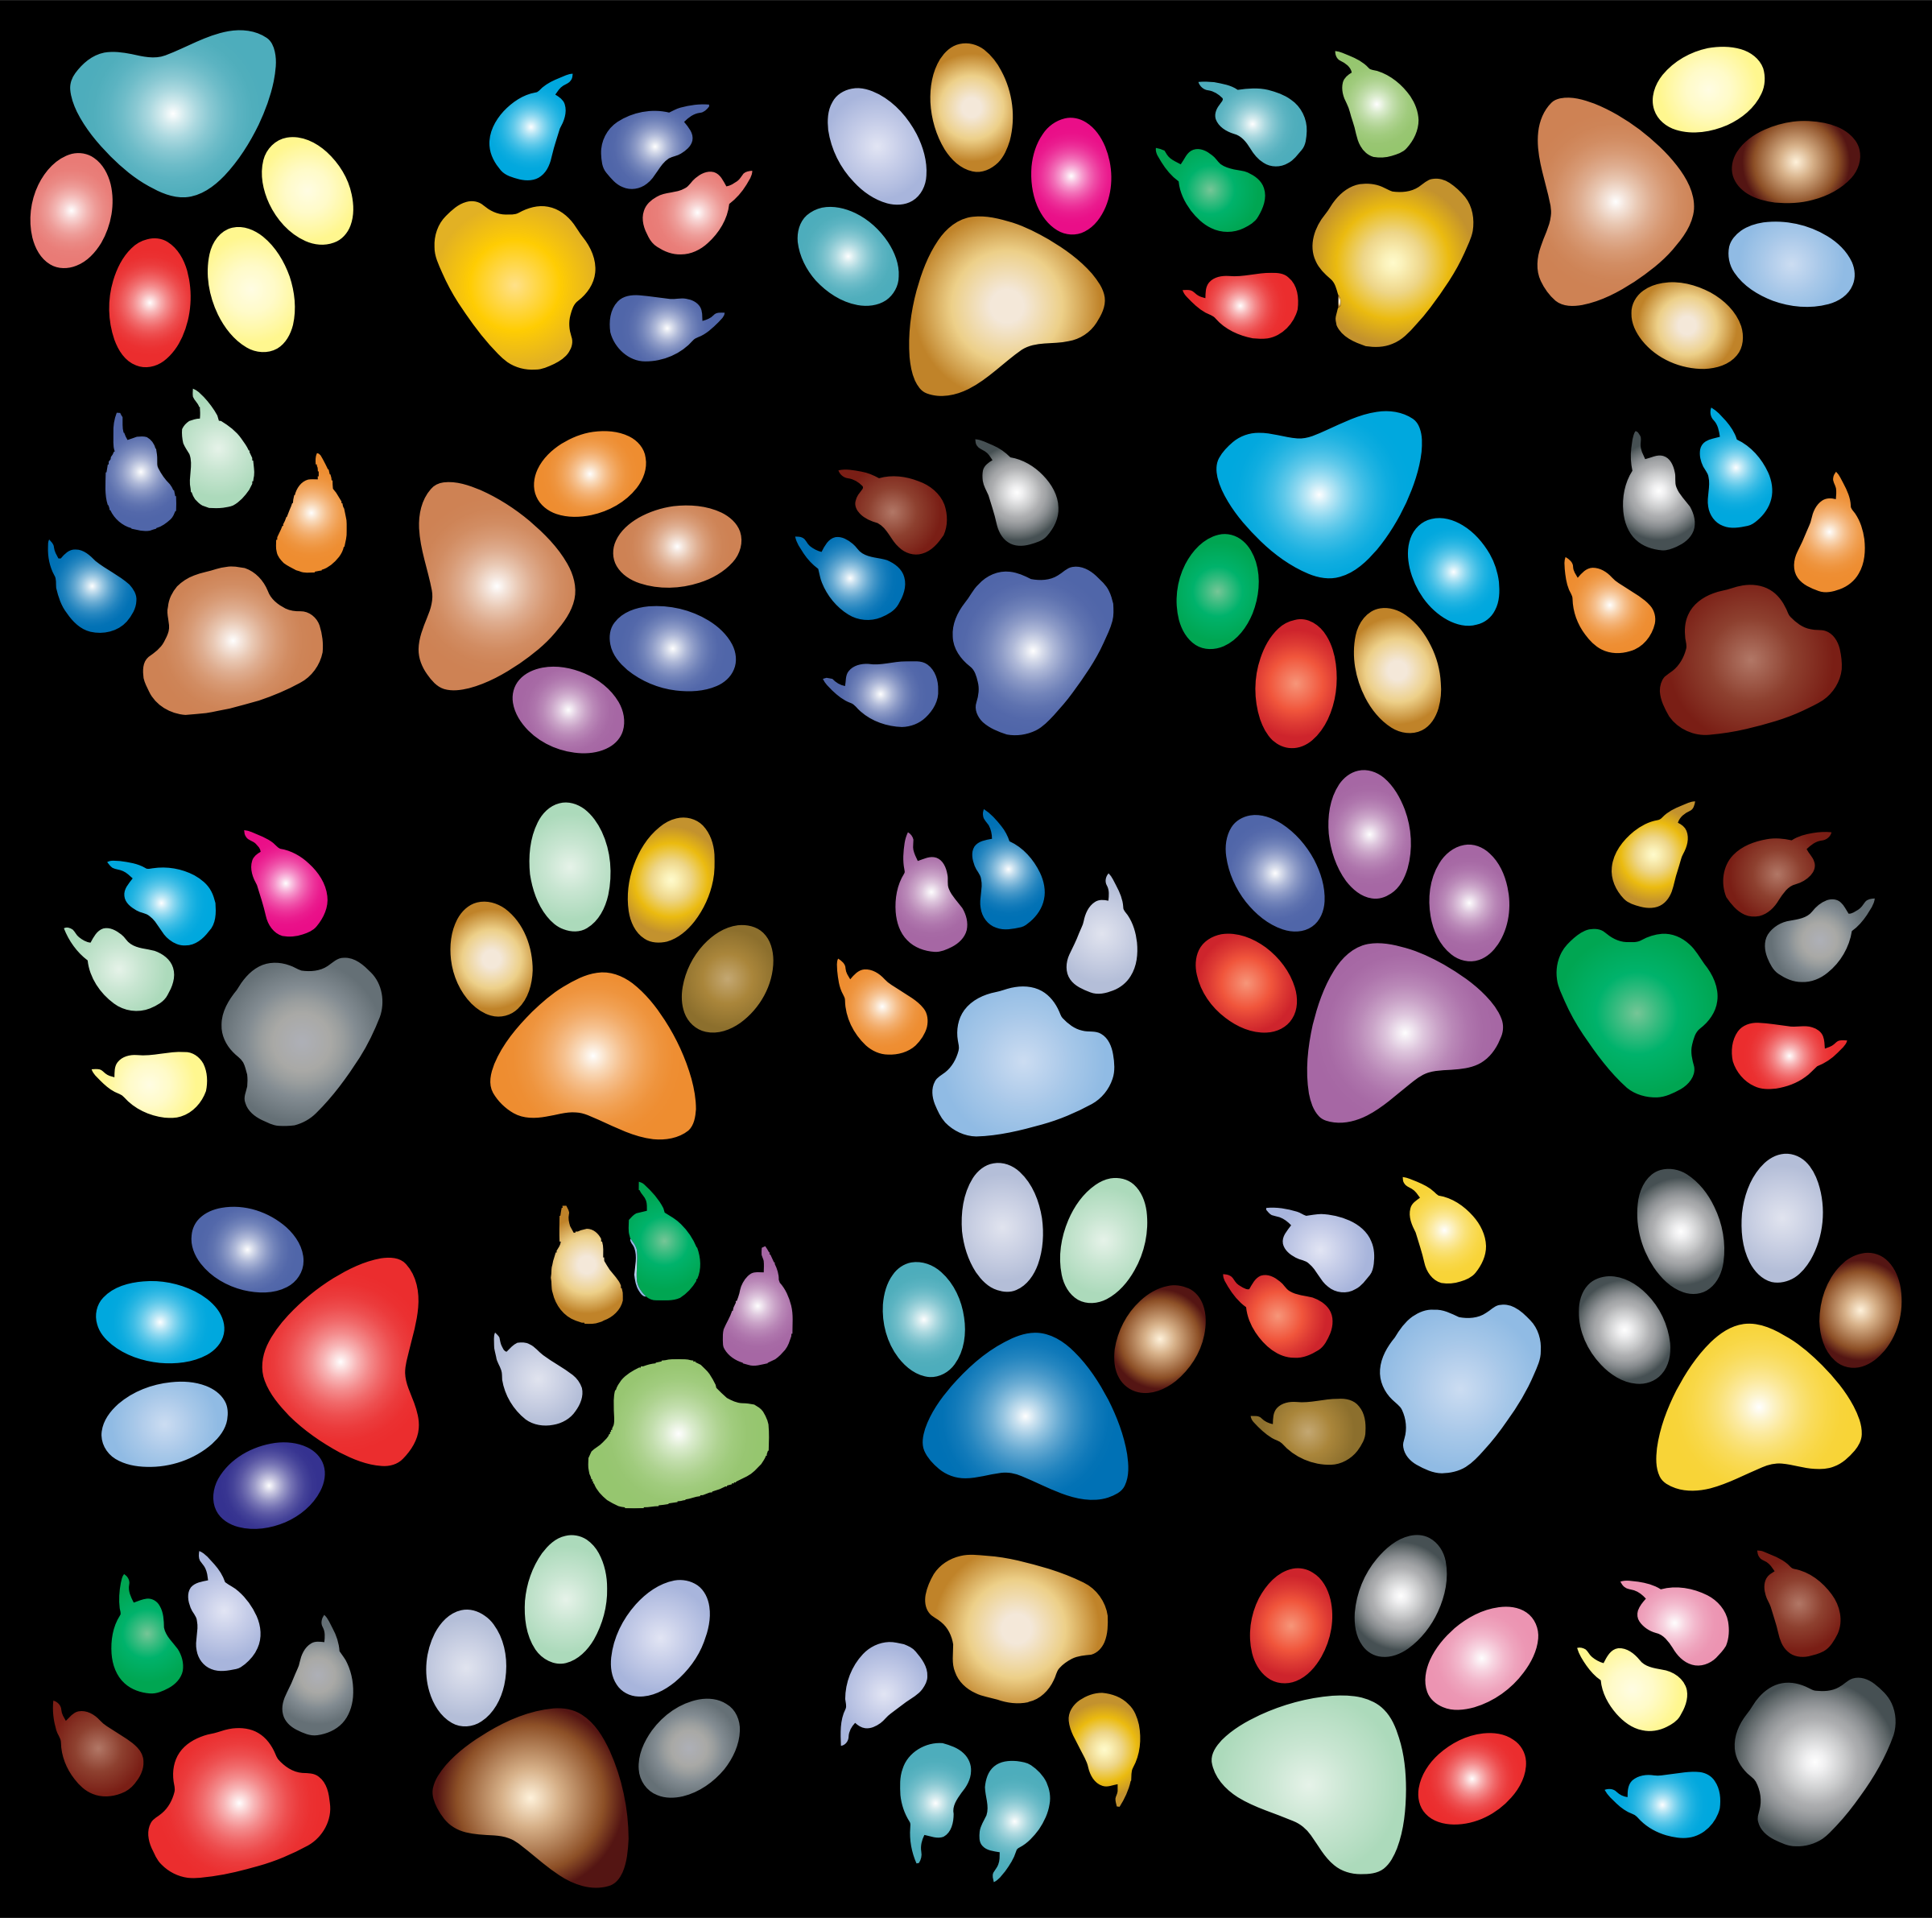 Colorful Paw Prints Pattern Background Reinvigorated 2 by GDJ